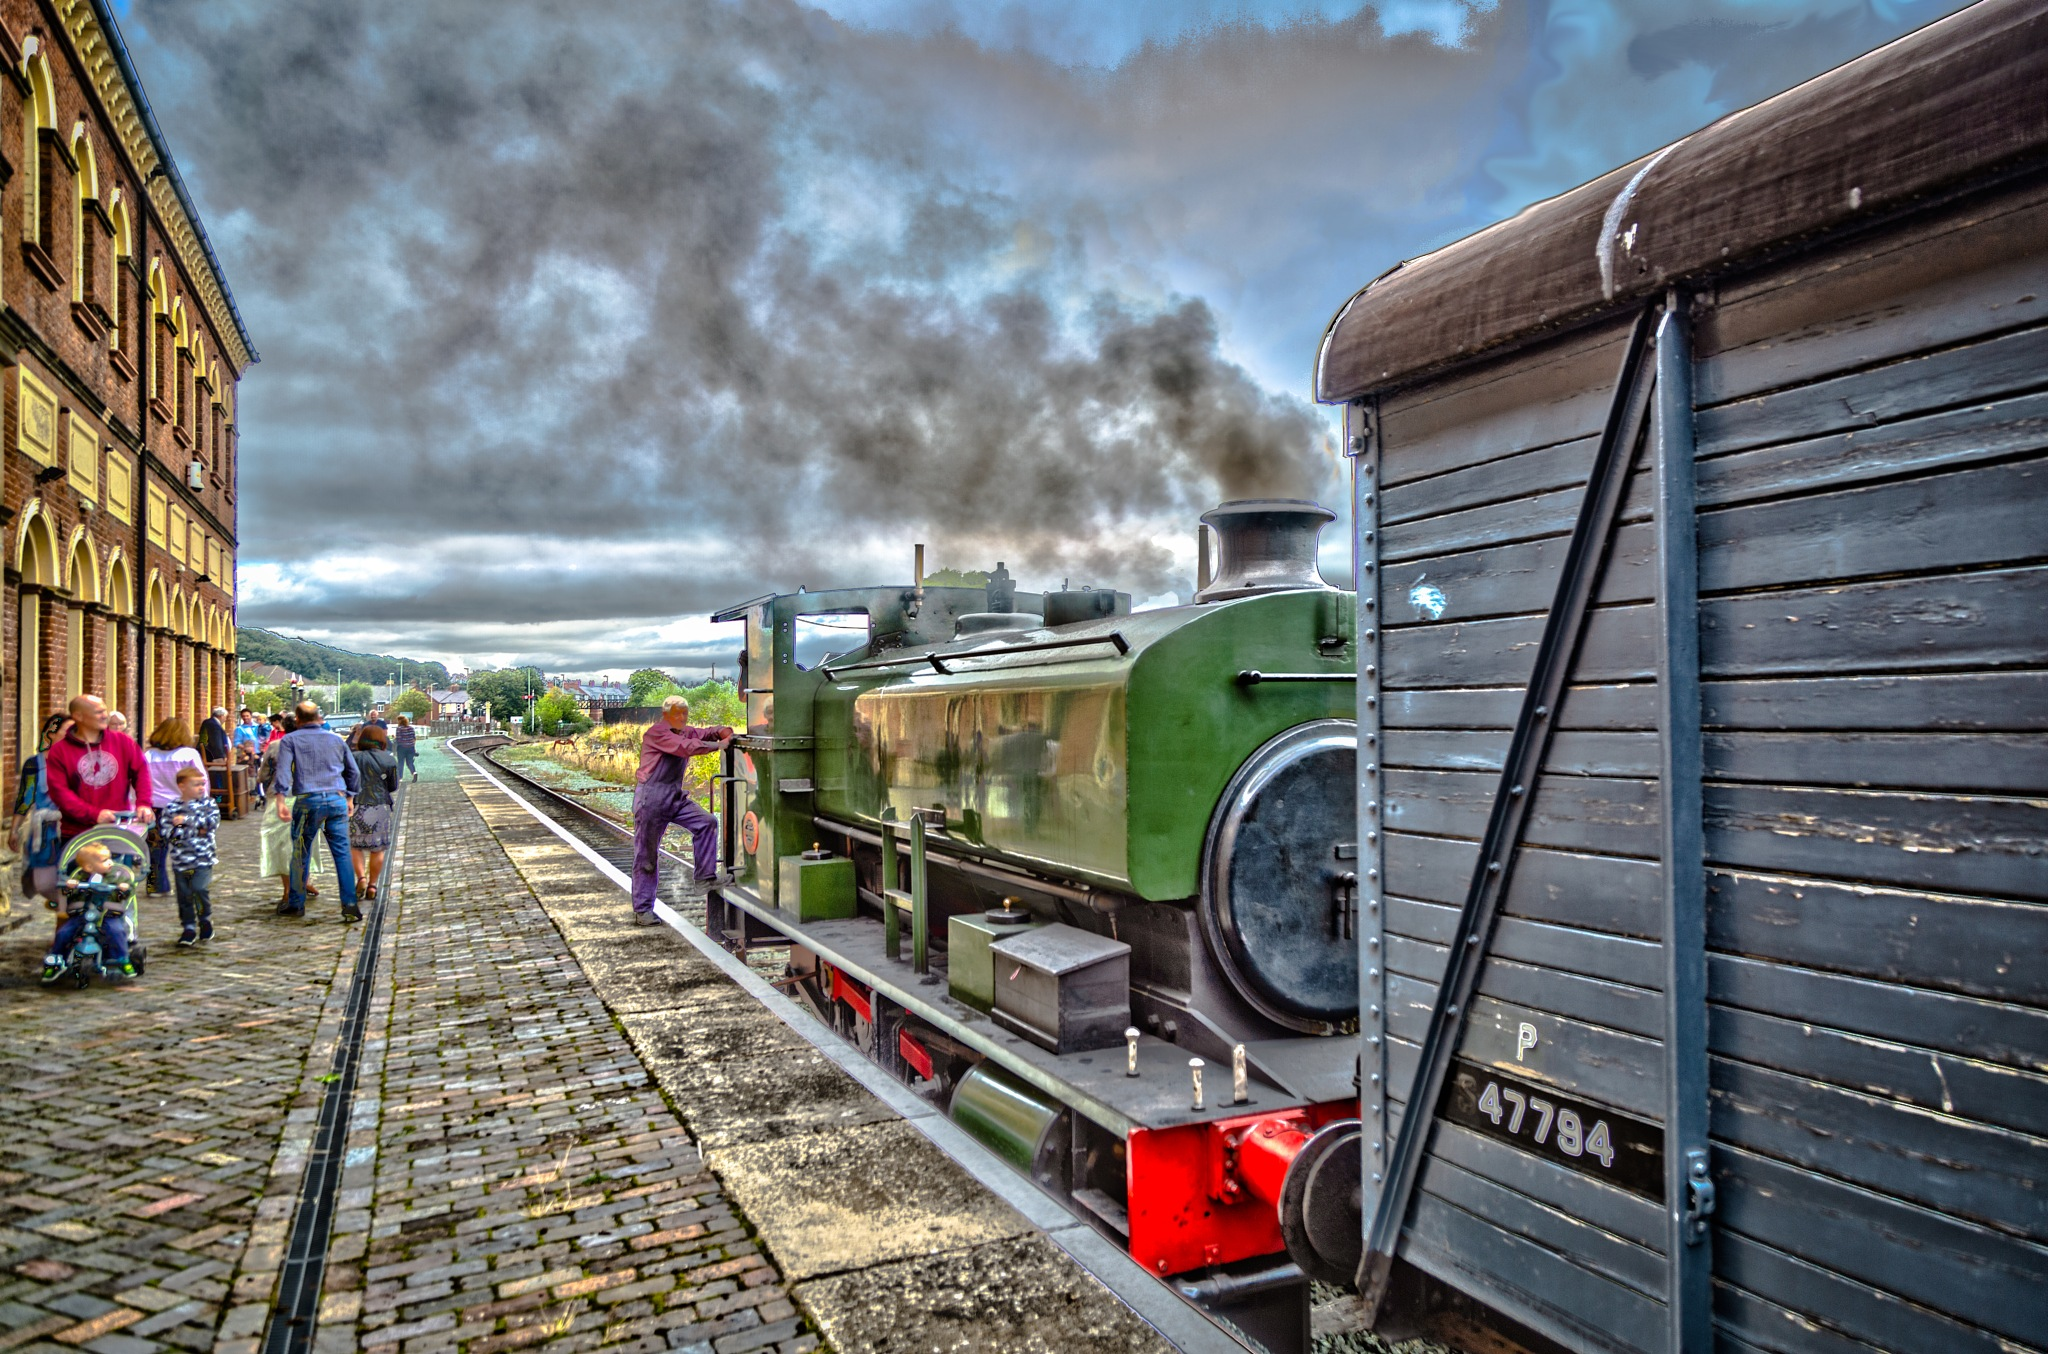 Steaming away by Craig Burley